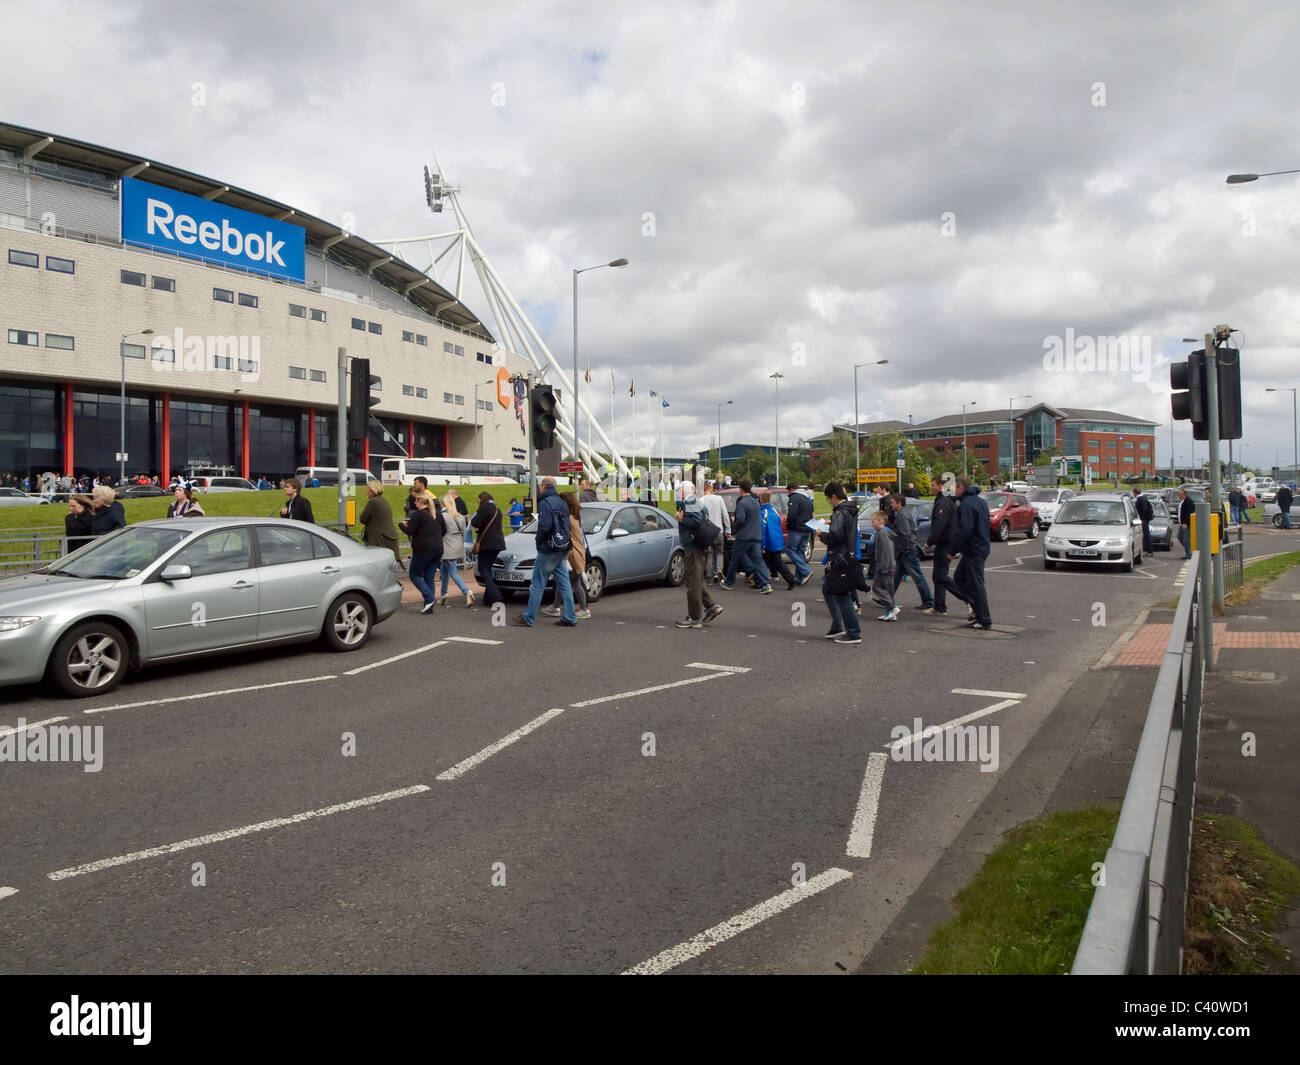 Football fans crossing the road going to the match at the Reebok Stadium, the home ground of Bolton Wanderers football Stock Photo